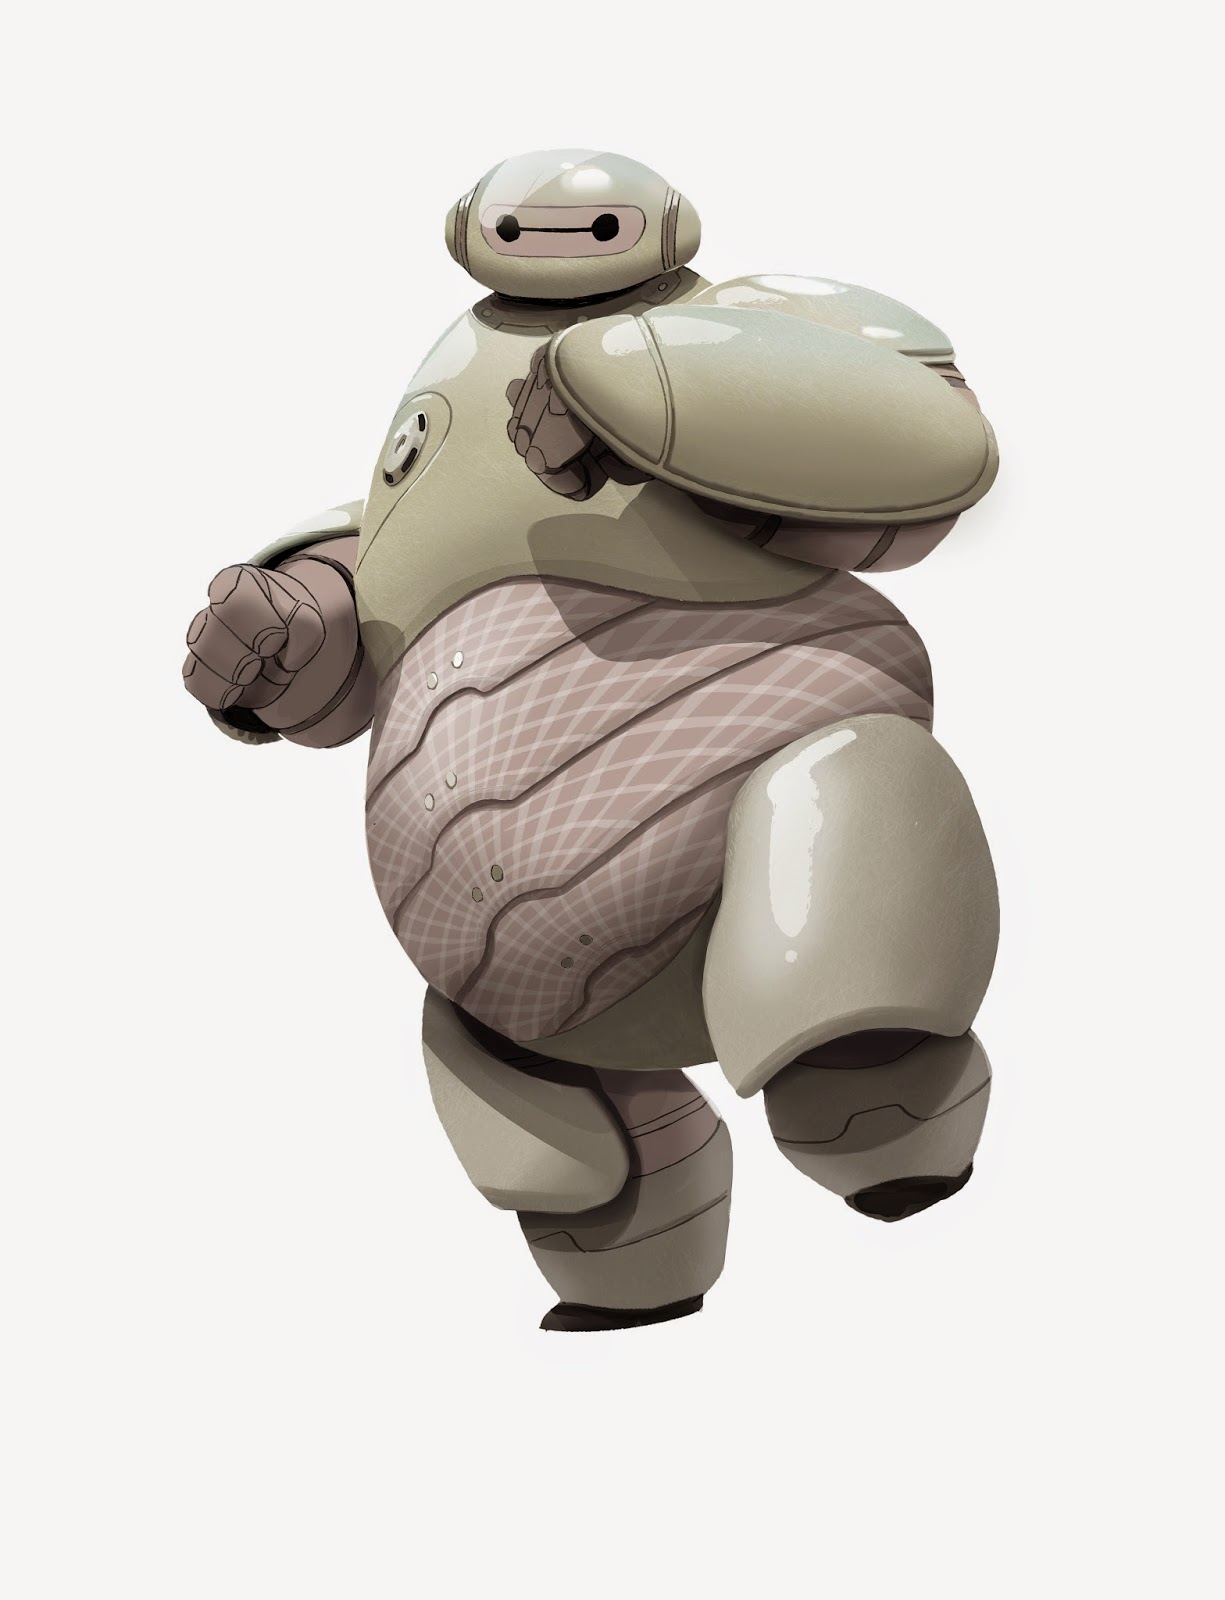 The Art Of Kevin Nelson Big Hero 6 Artwork With Baymax